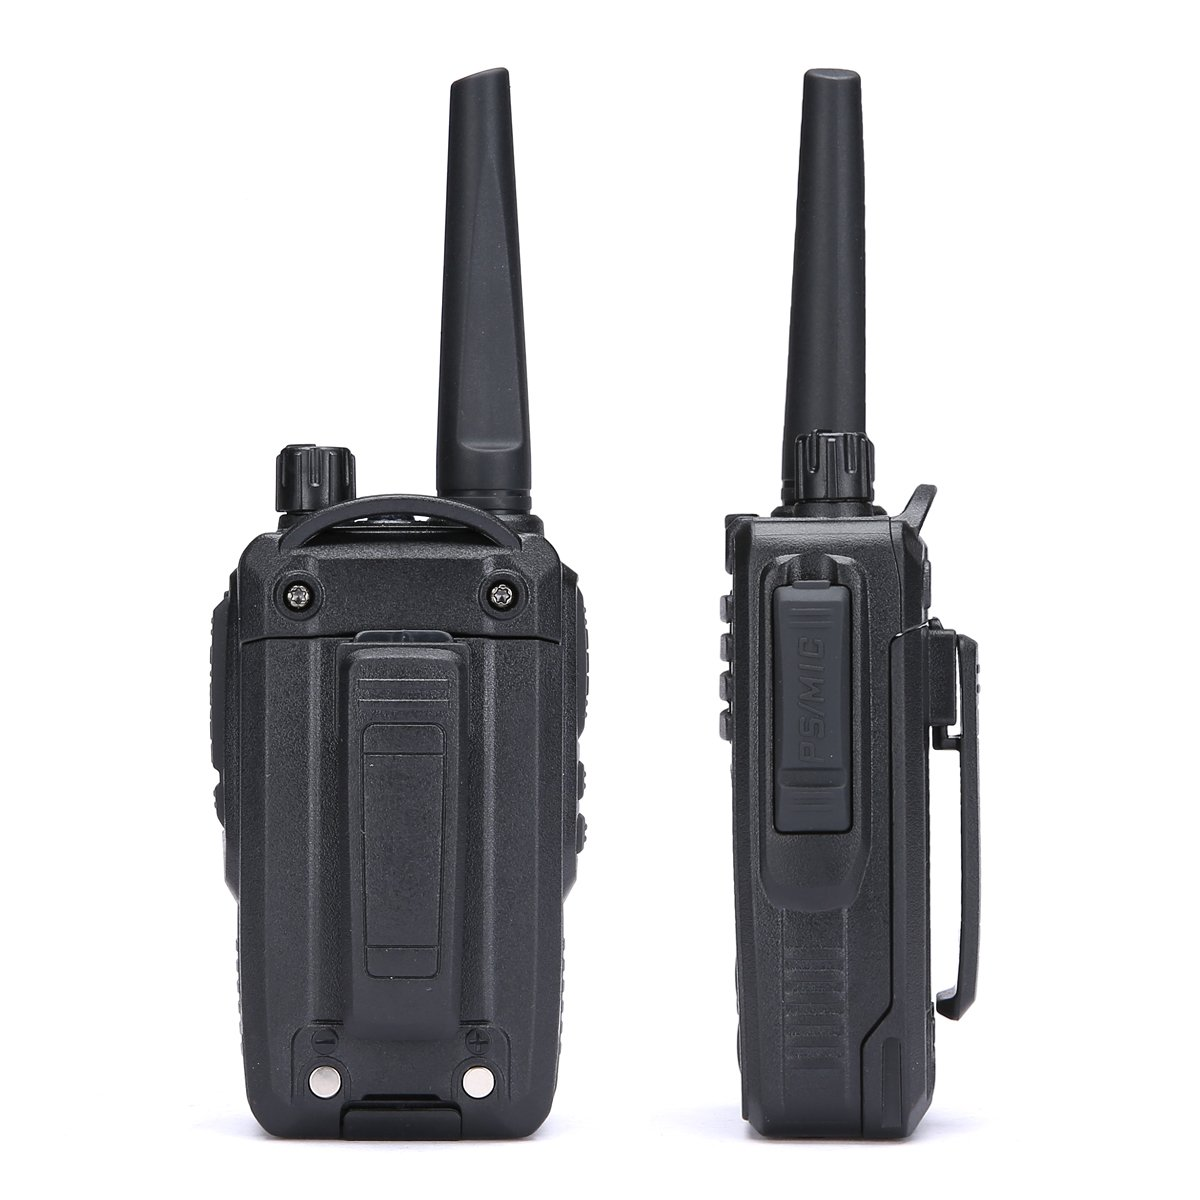 Black Walkie Talkies 2 Way Radio 5 Watts Uhf Ham Two Way Radio LT-320HM by Luiton